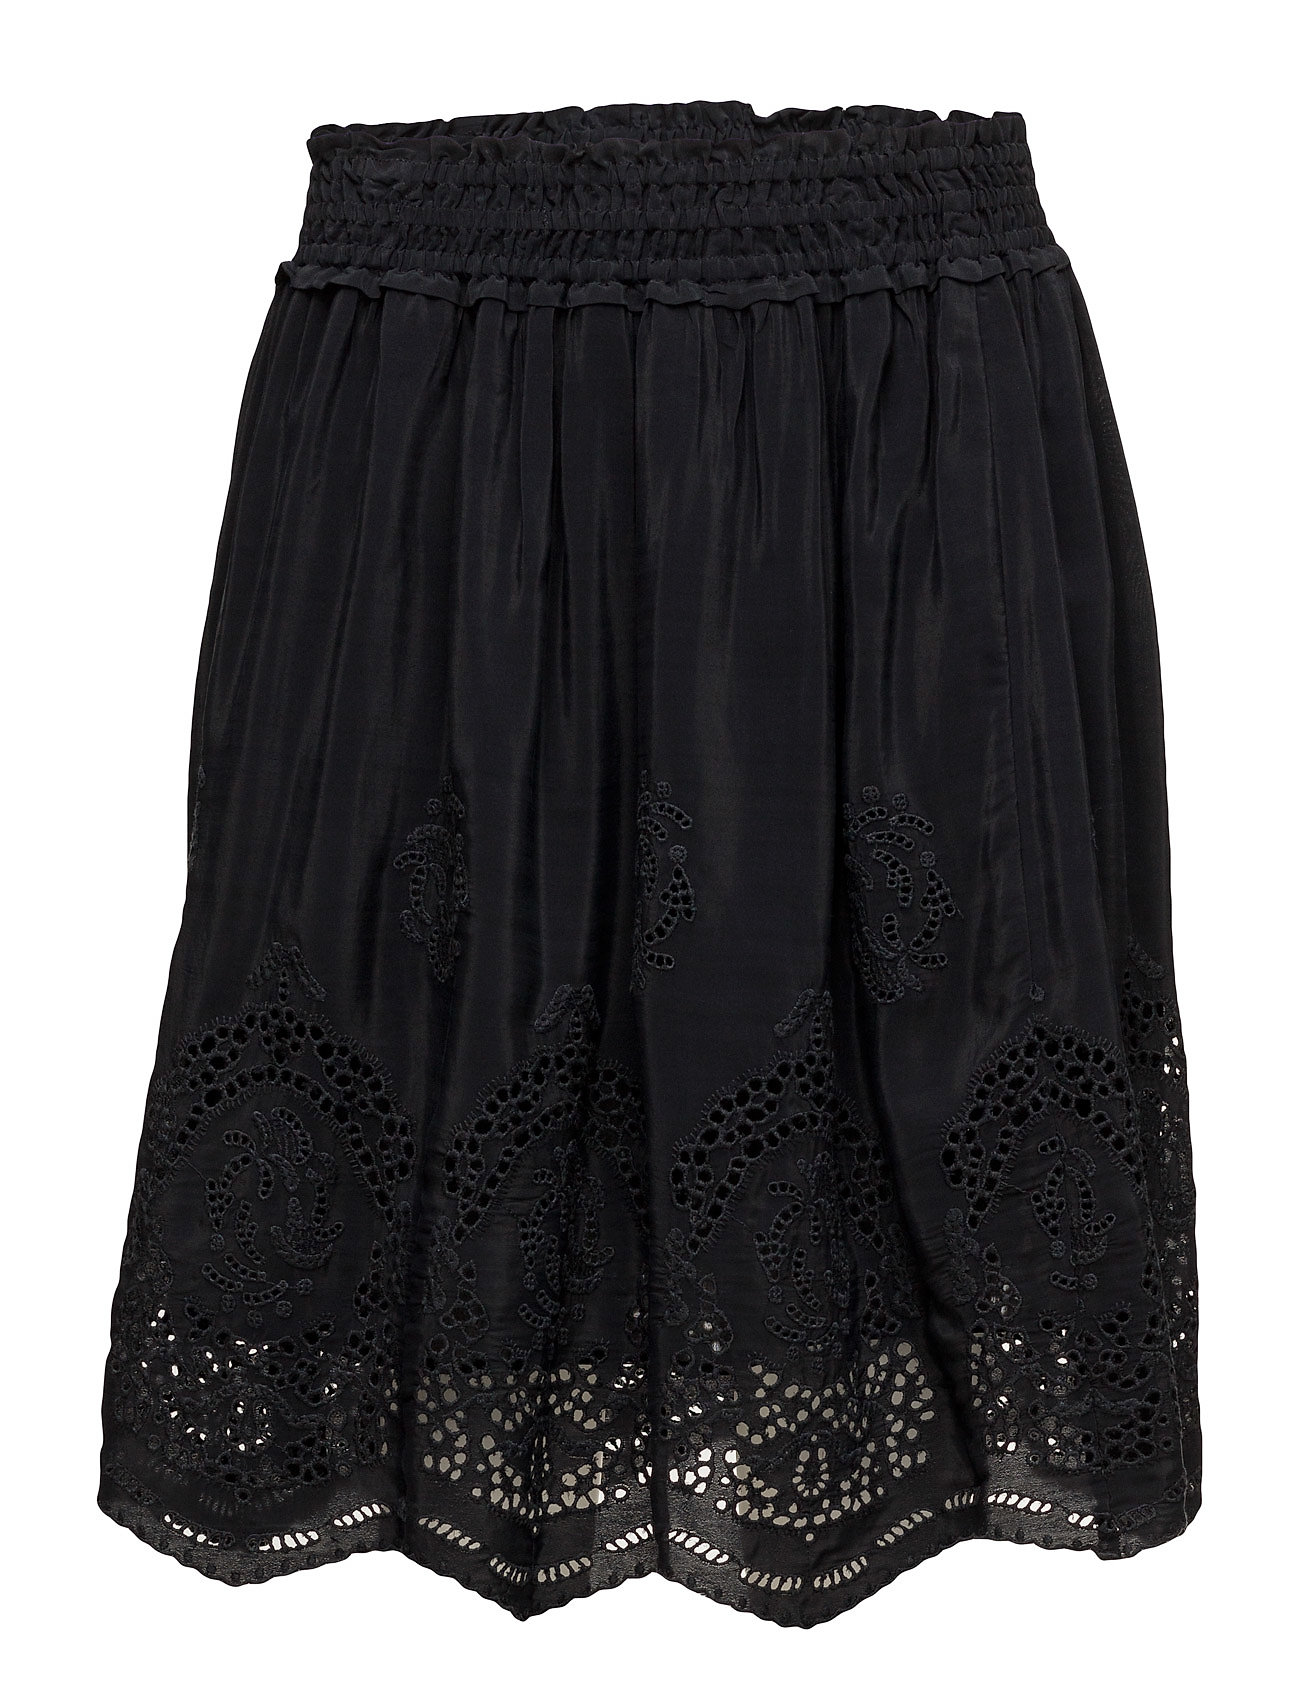 Scotch & Soda Viscose skirt with special cut out embroideries